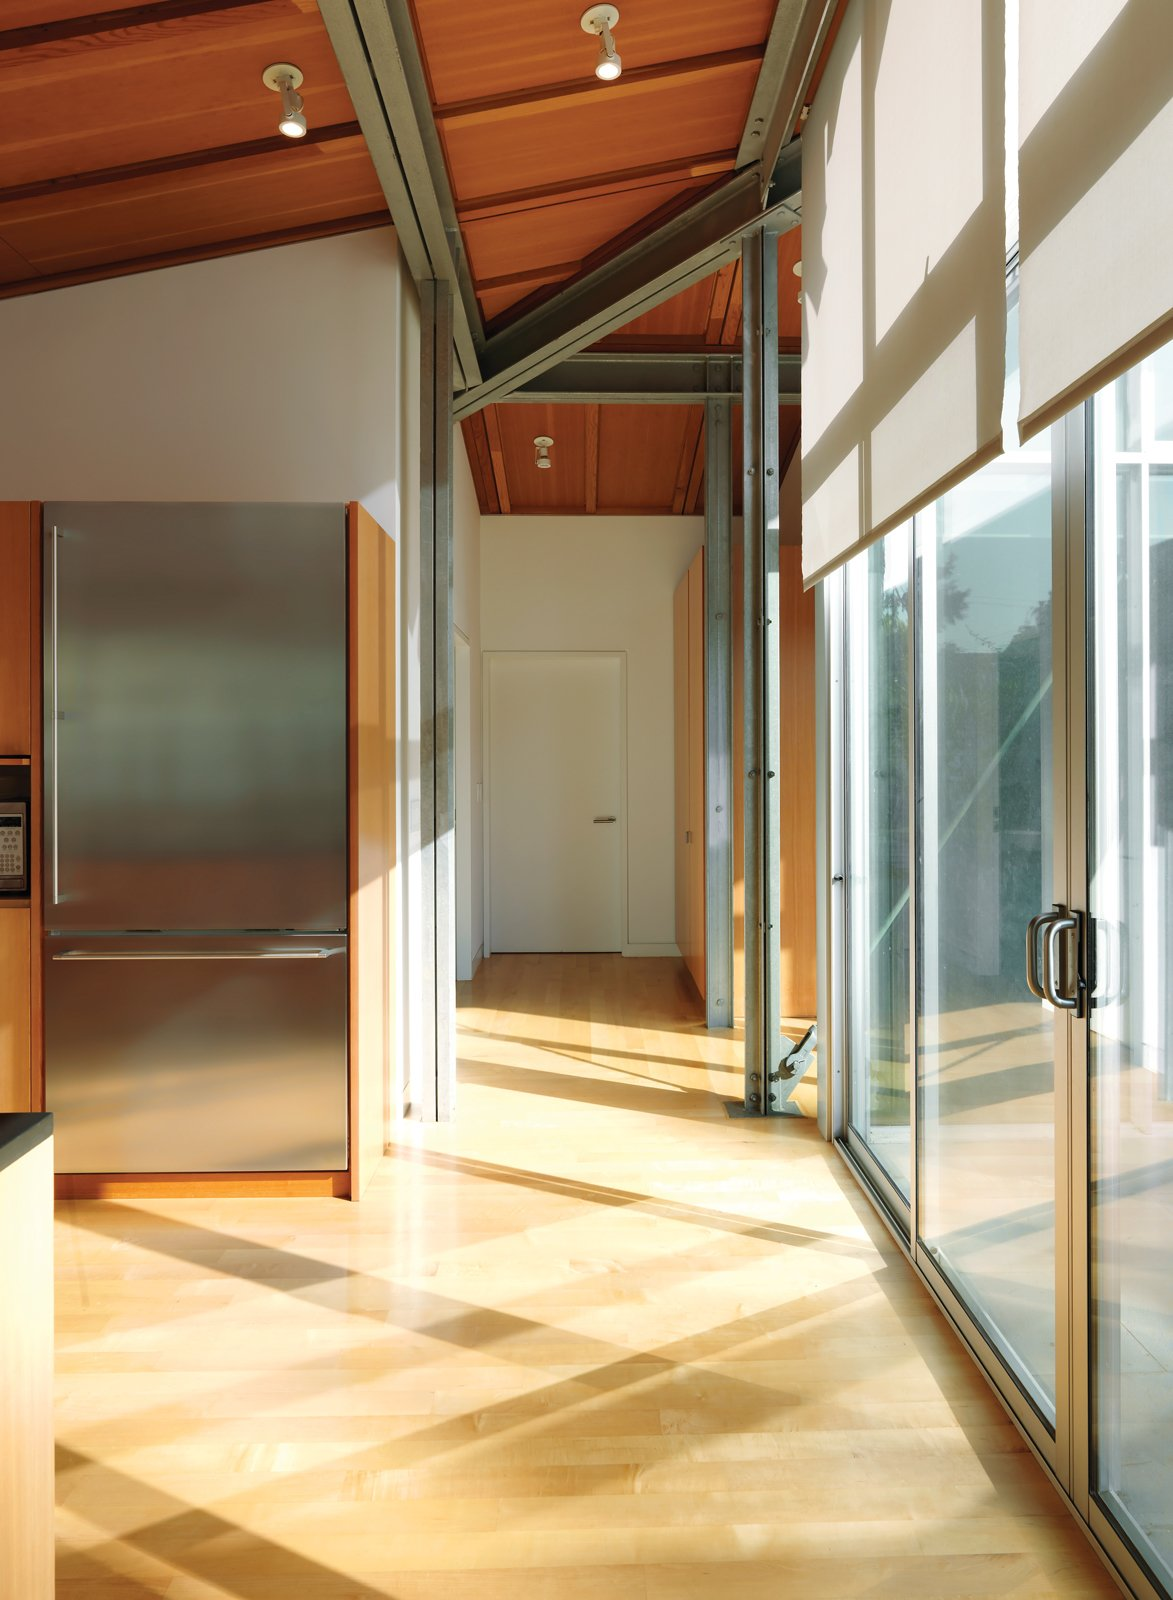 The architecture mixes Douglas fir beams and exposed steel framing, achieving its soaring spaces without pretentiousness. Tagged: Kitchen, Refrigerator, and Wood Cabinet.  Photo 5 of 16 in Family Matters